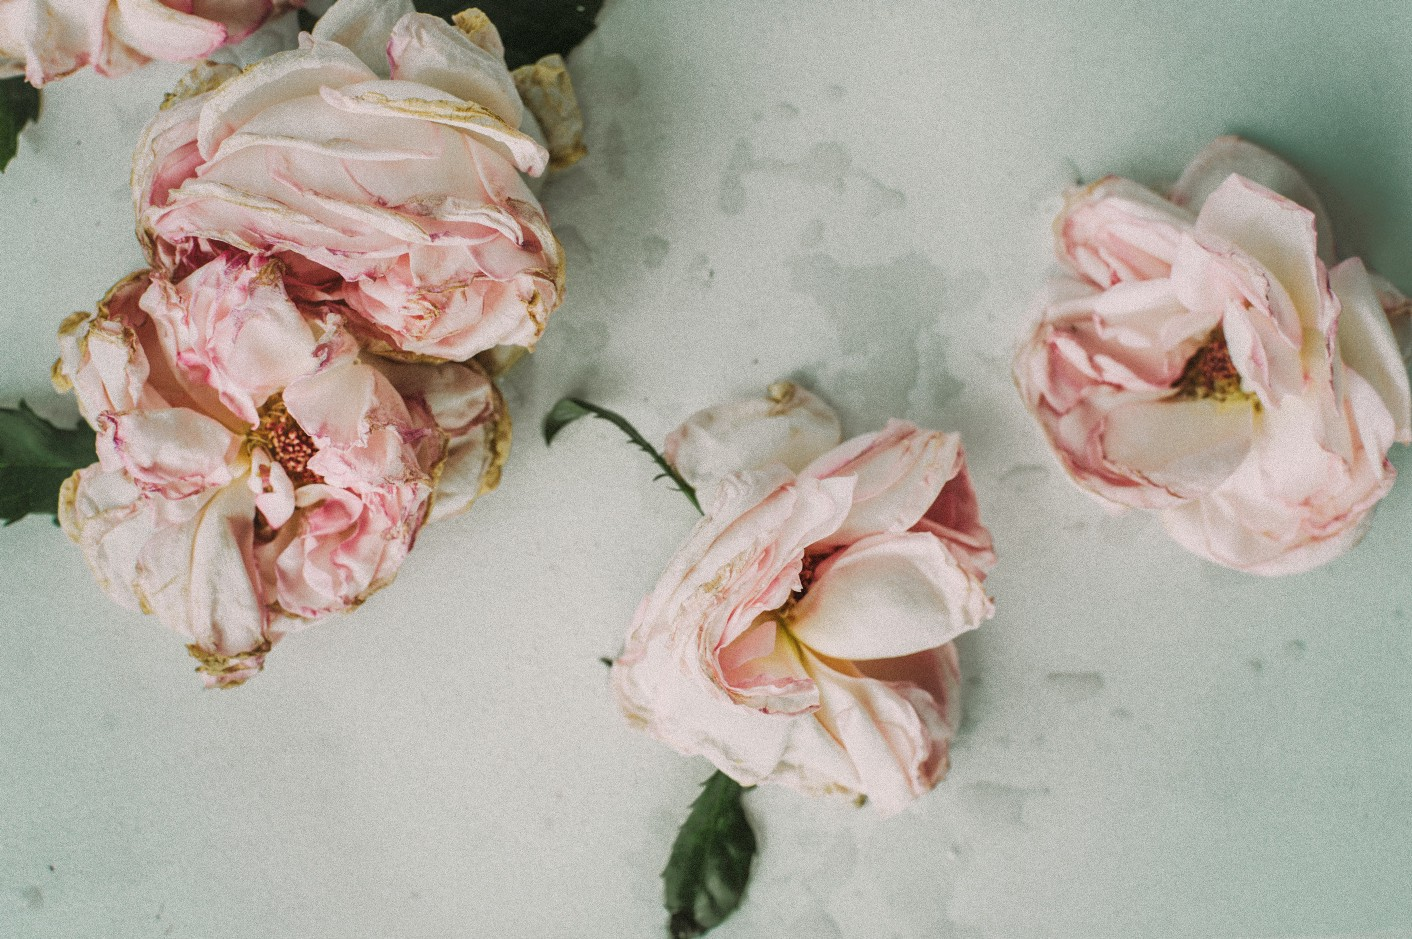 An image of three pink roses on a white floor.